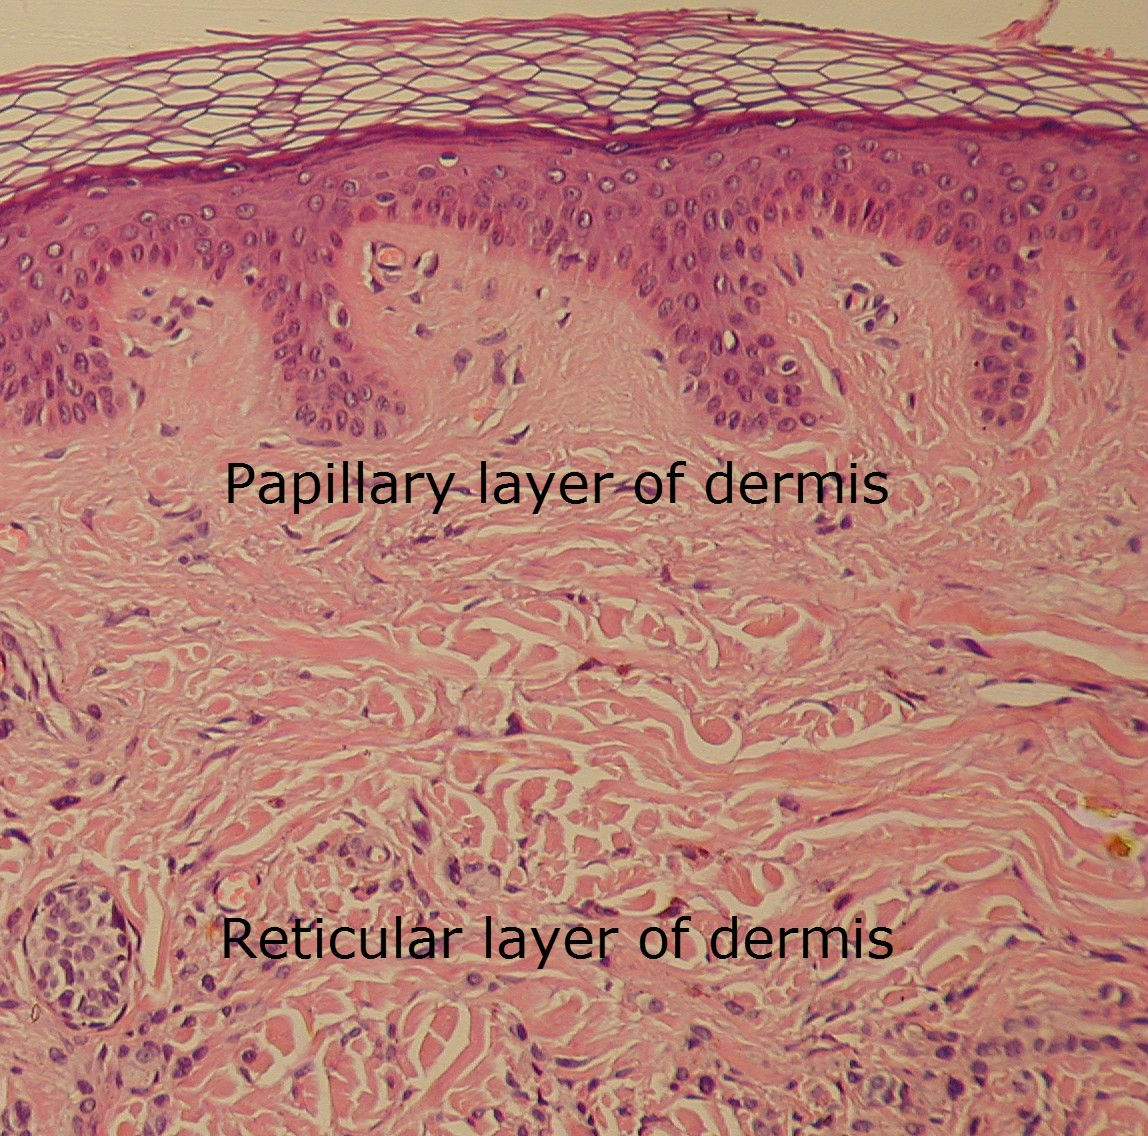 Areolar Connective Tissue Diagram Ear Scala Dermis Papillary Layer Of The Dynamic Natural